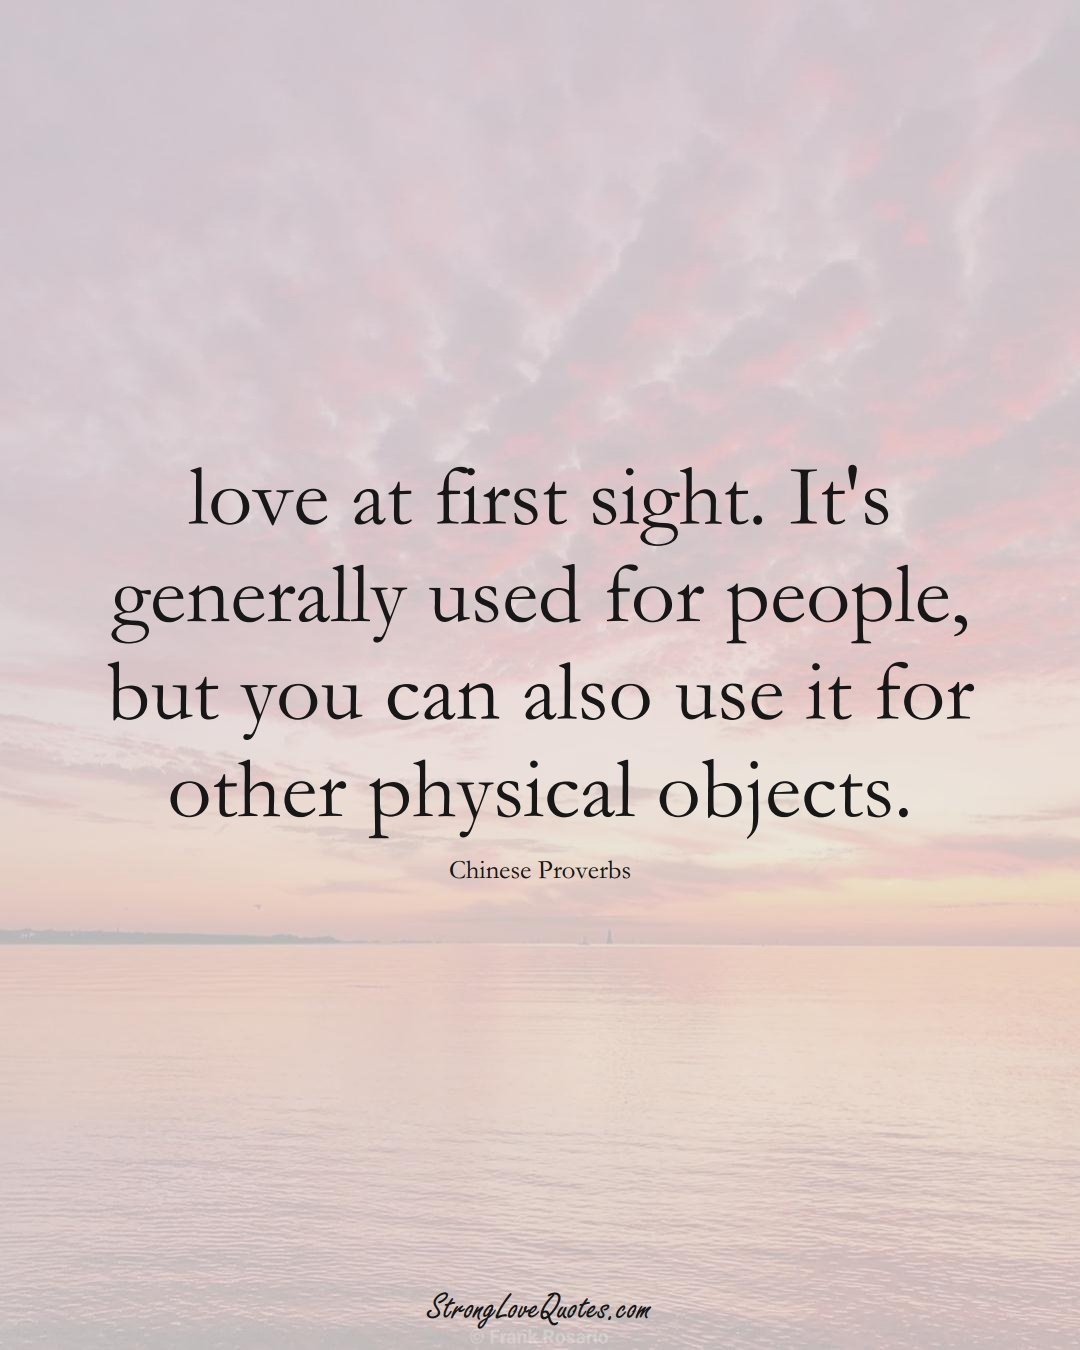 love at first sight. It's generally used for people, but you can also use it for other physical objects. (Chinese Sayings);  #AsianSayings